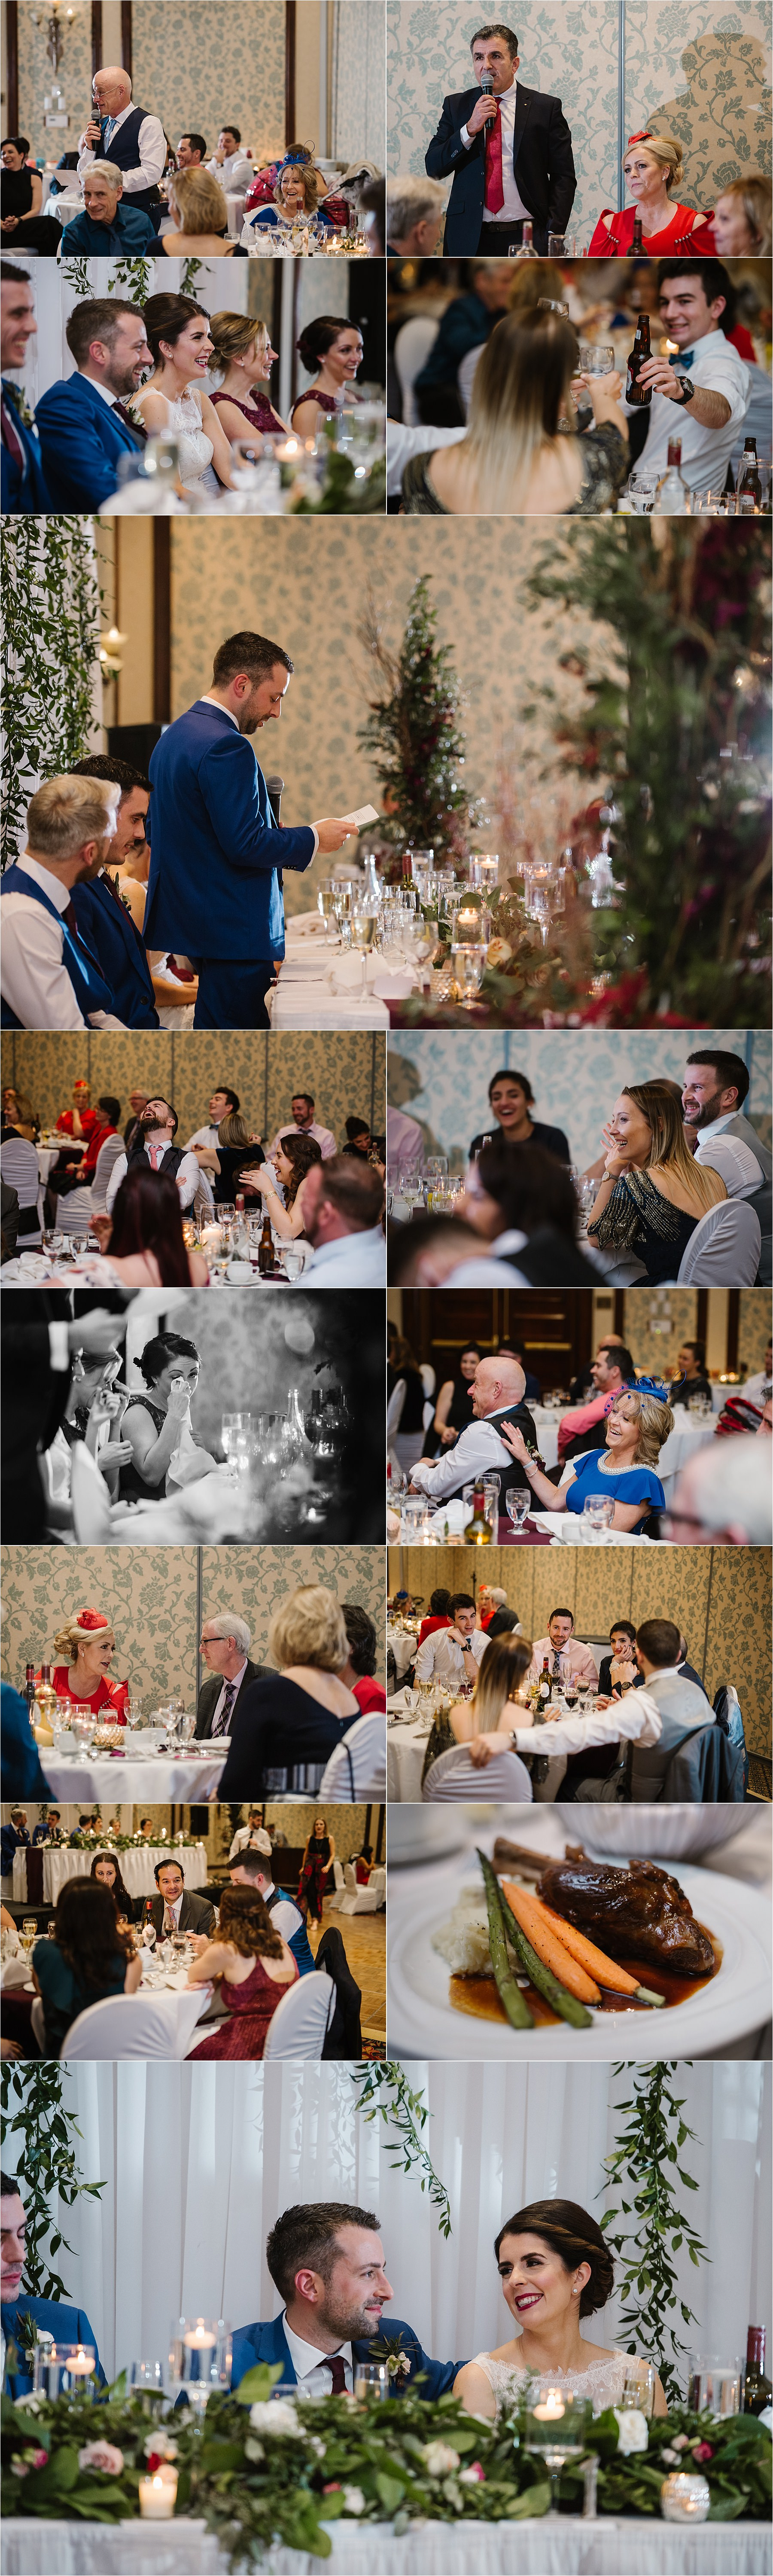 Sun Peaks Grand destination wedding reception speeches laughter crying